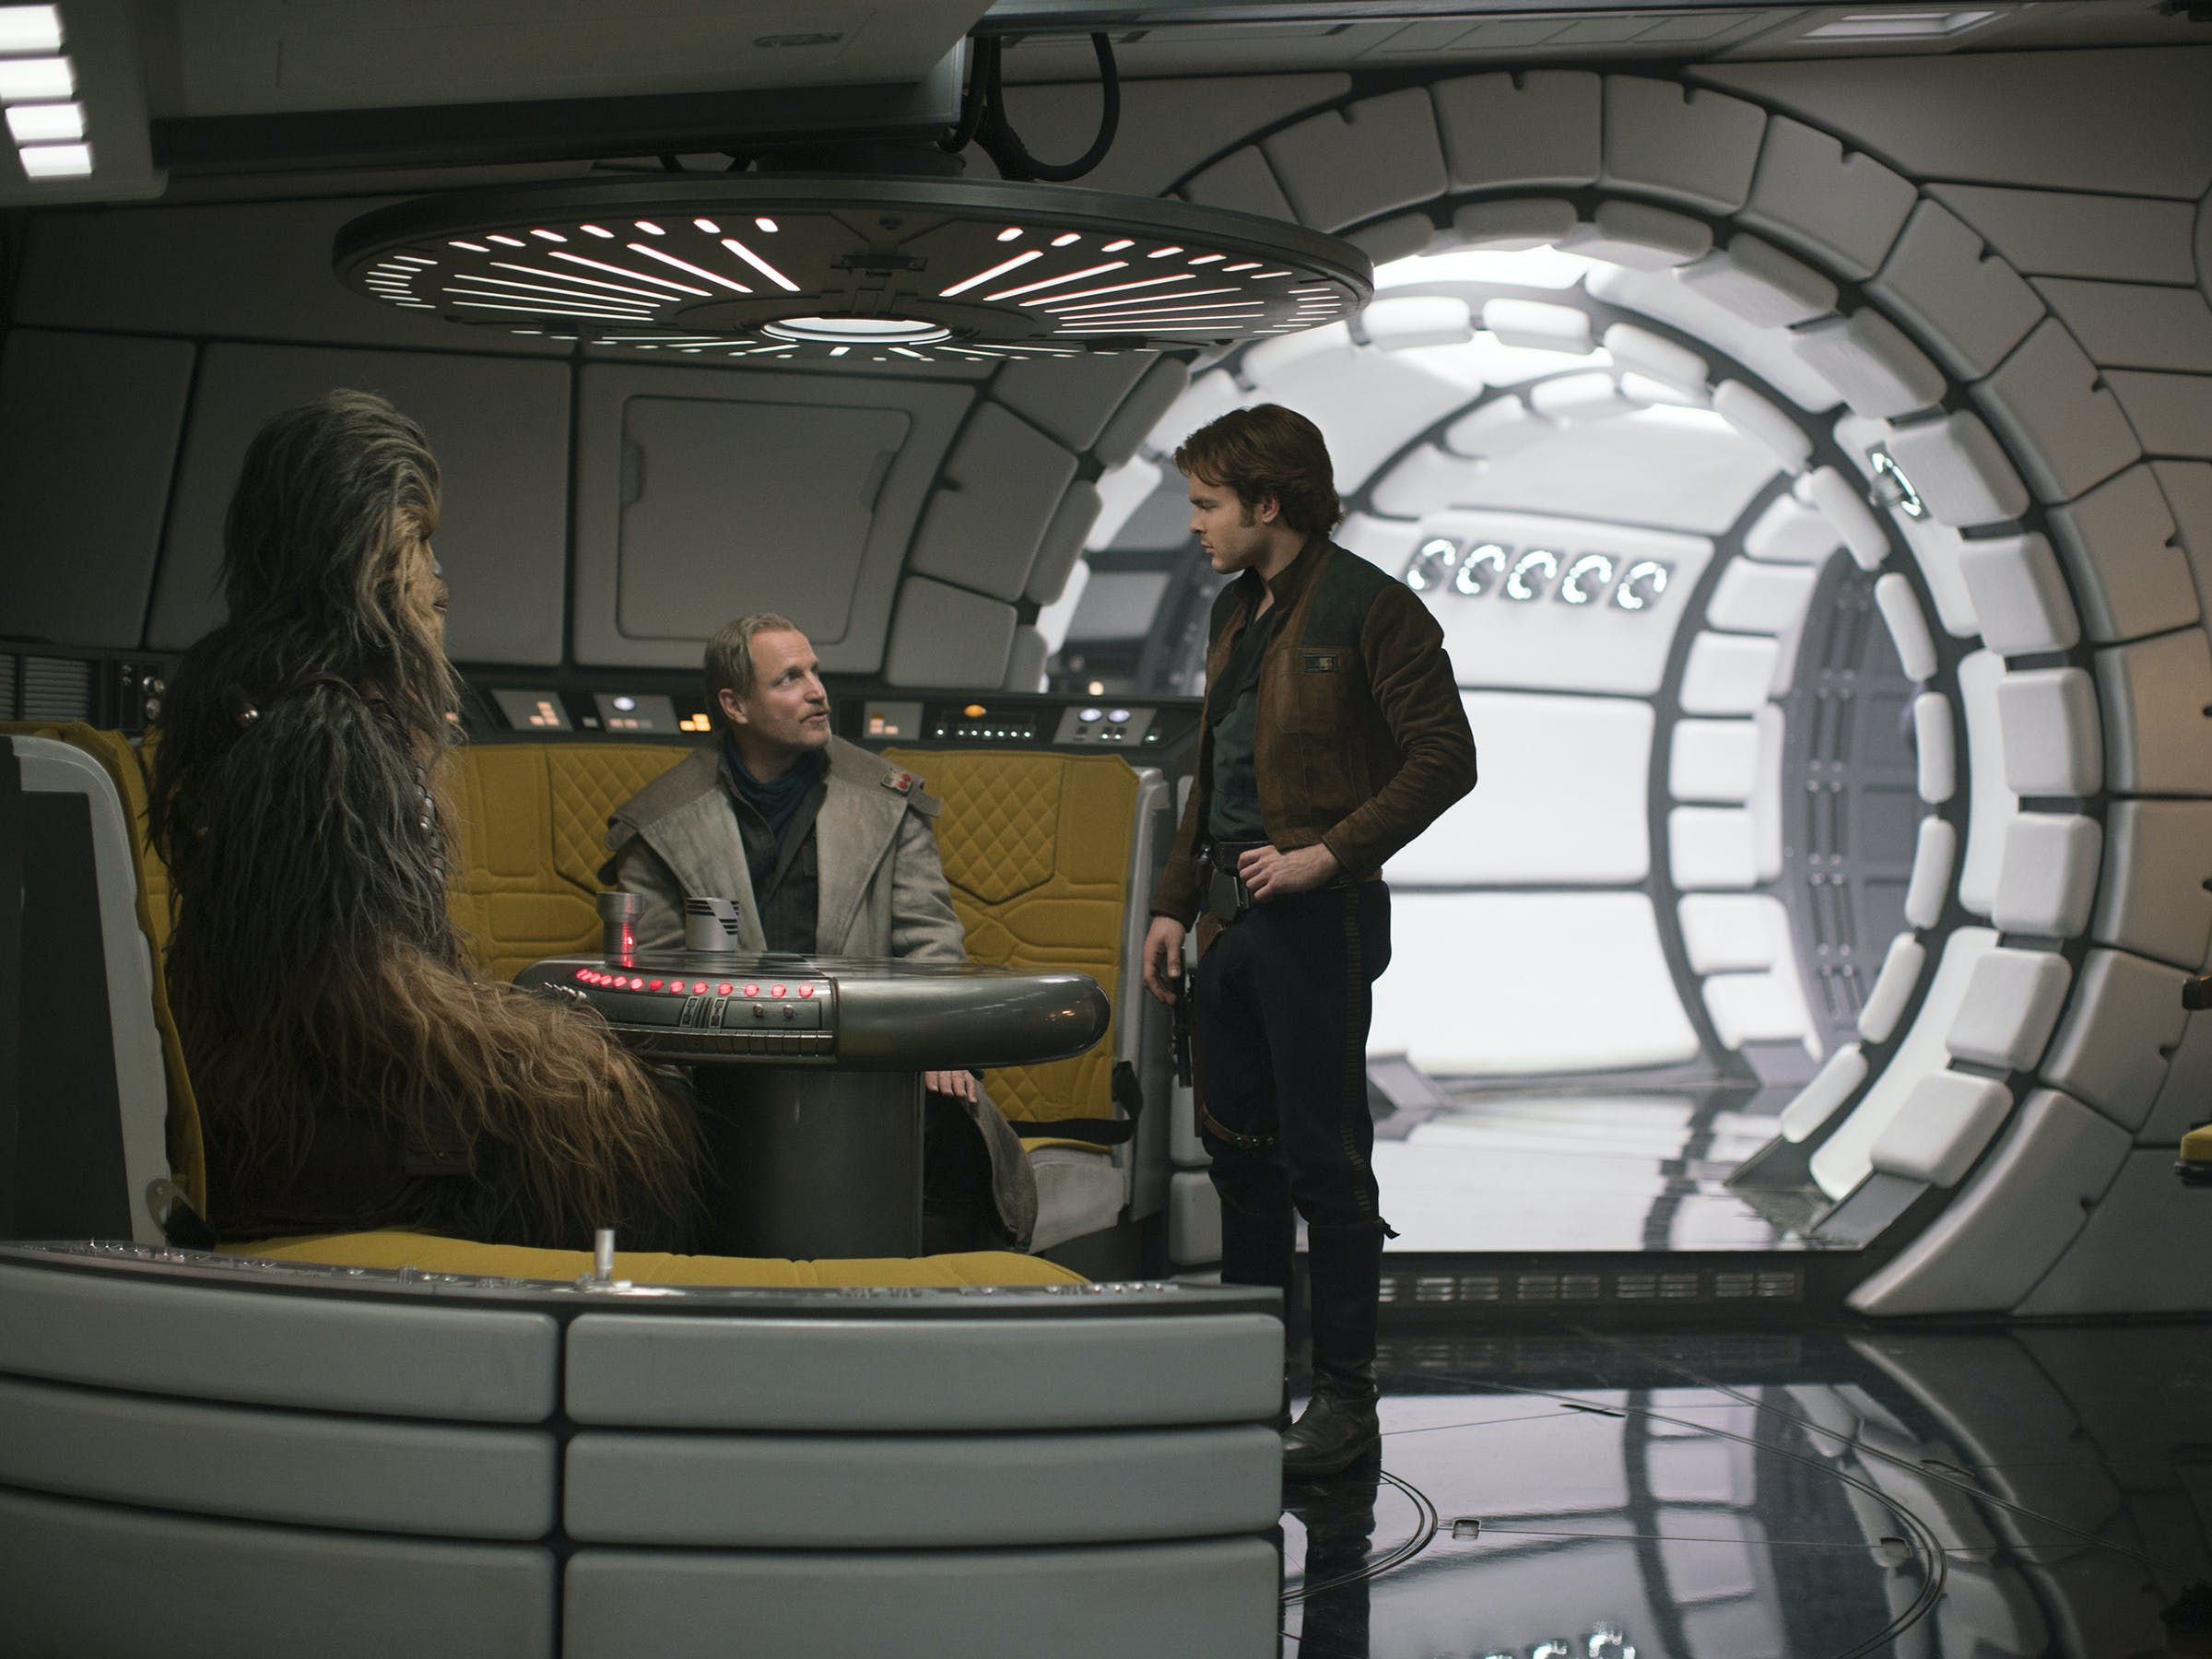 'Solo: A Star Wars Story' shiny Millennium Falcon.